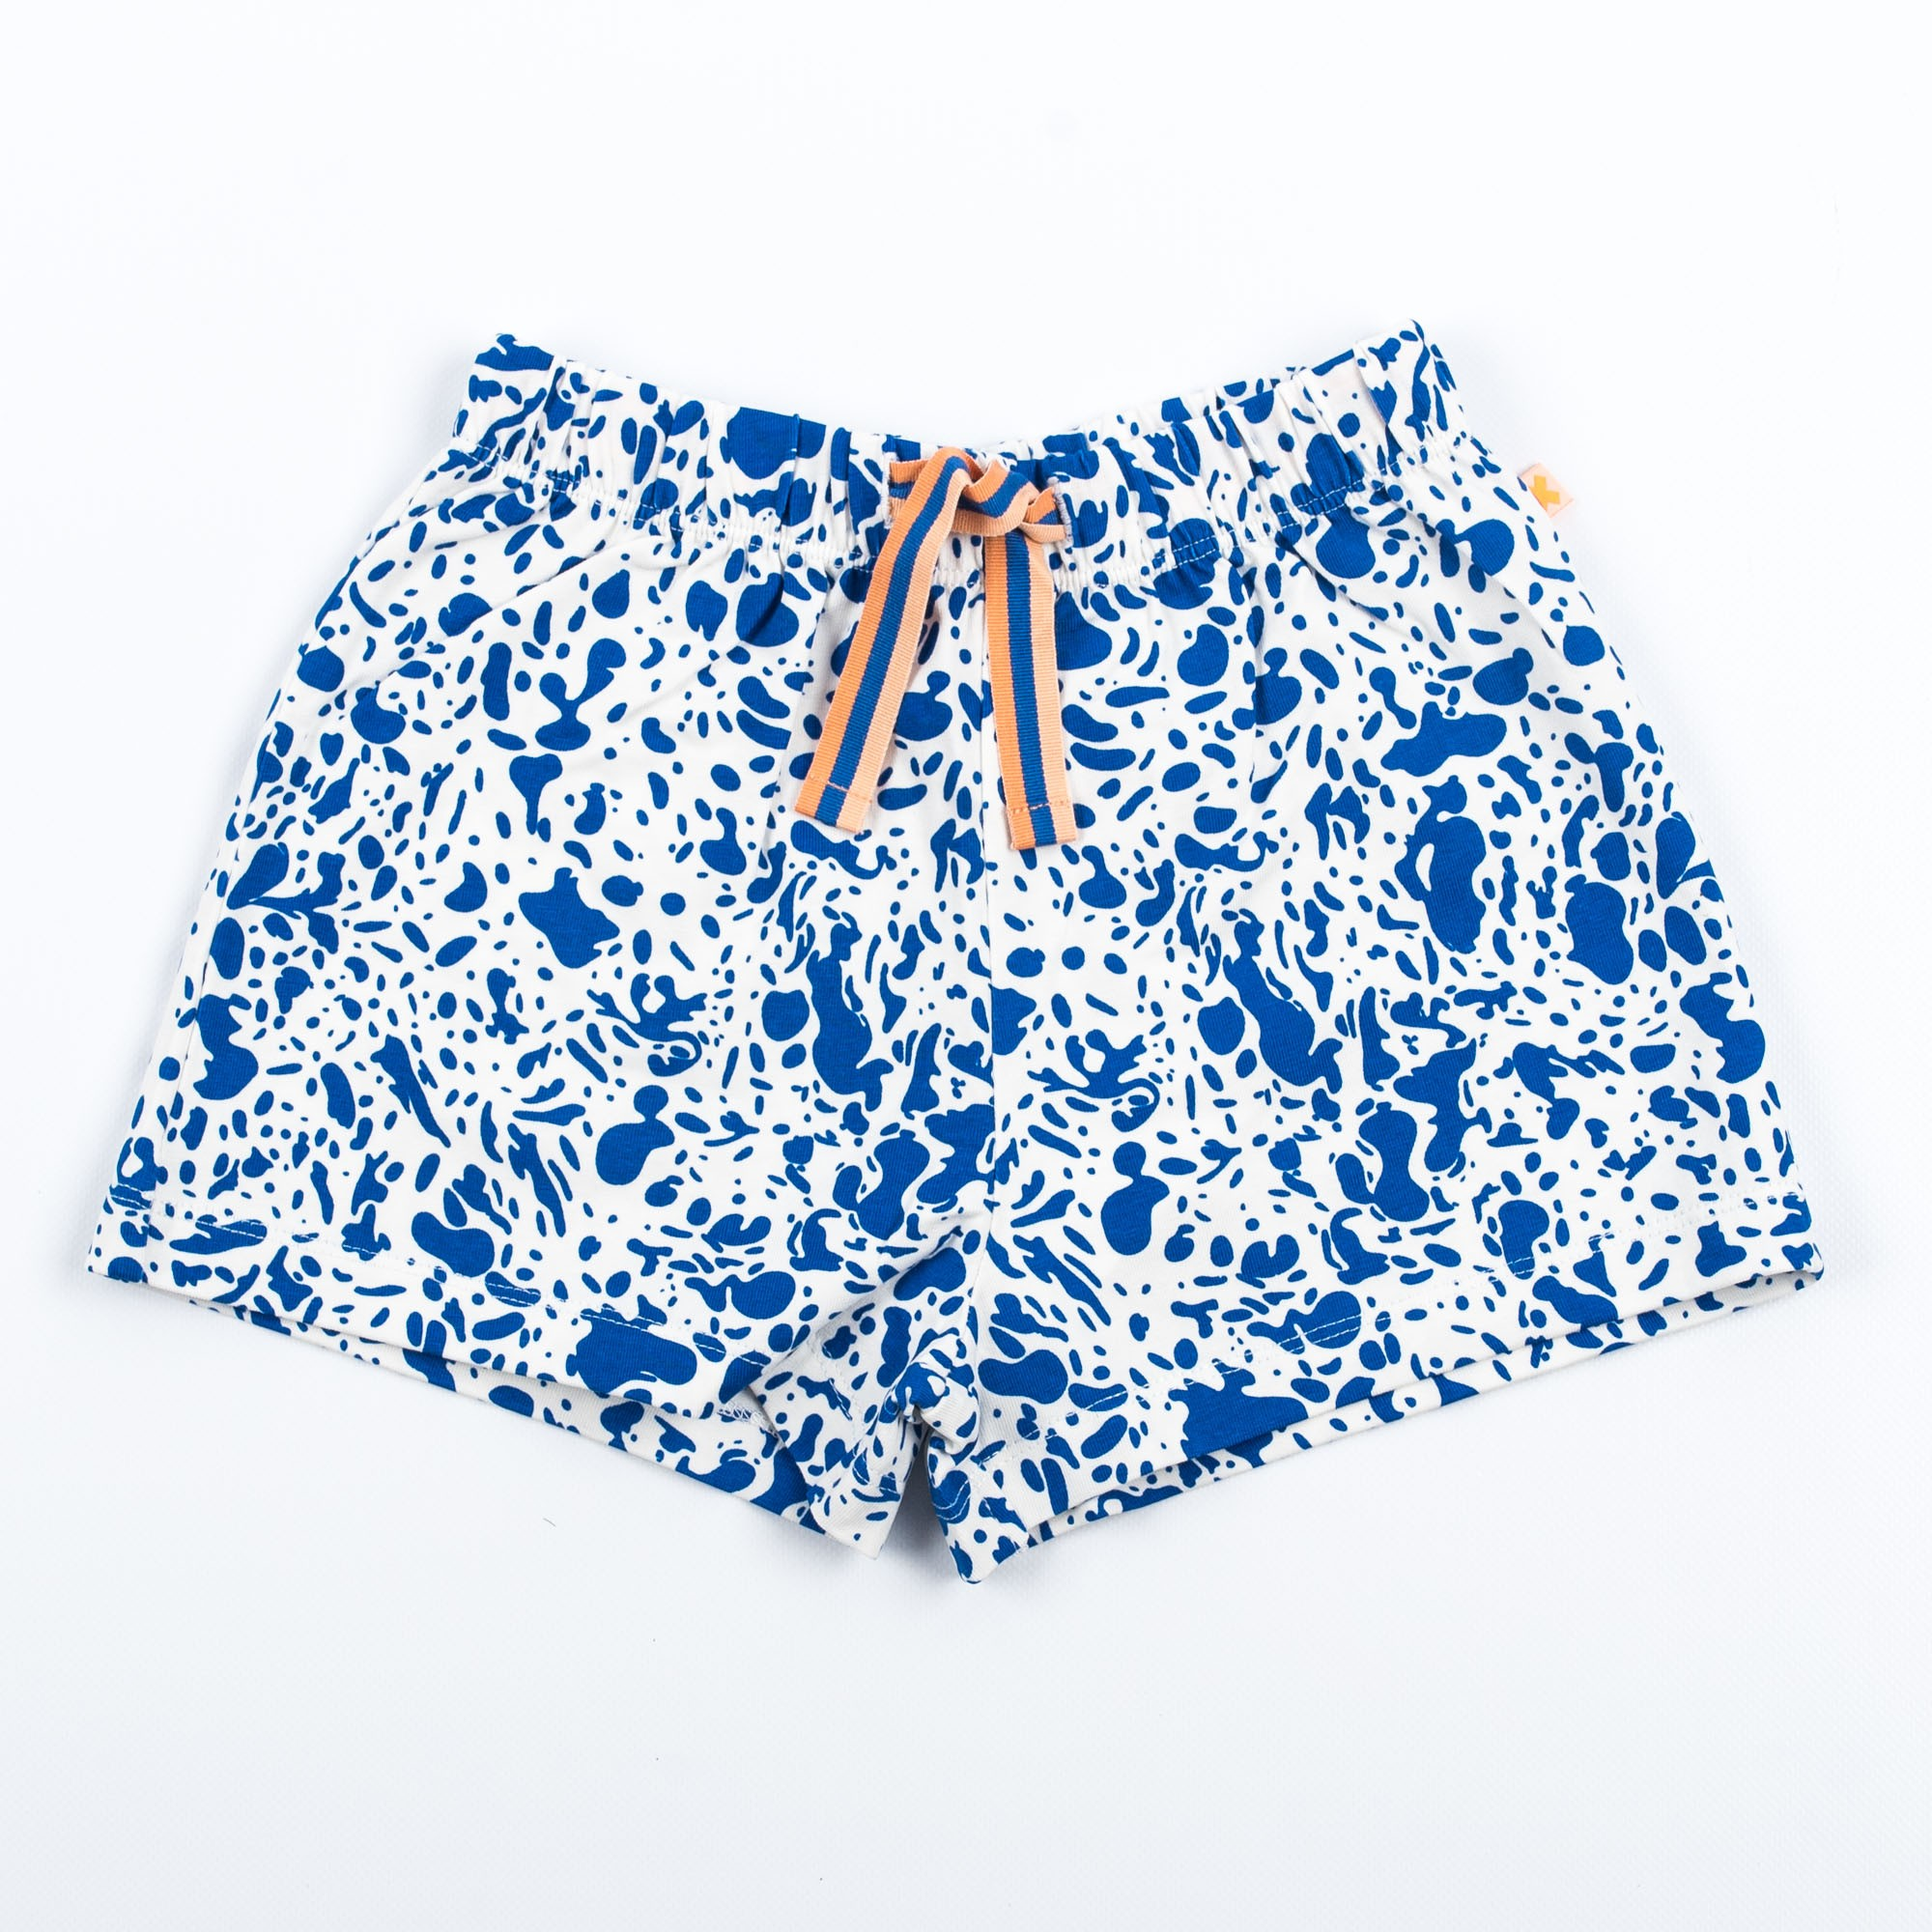 Tinycottons Off-White Shorts with Blue Speckles | littlehipstar.com